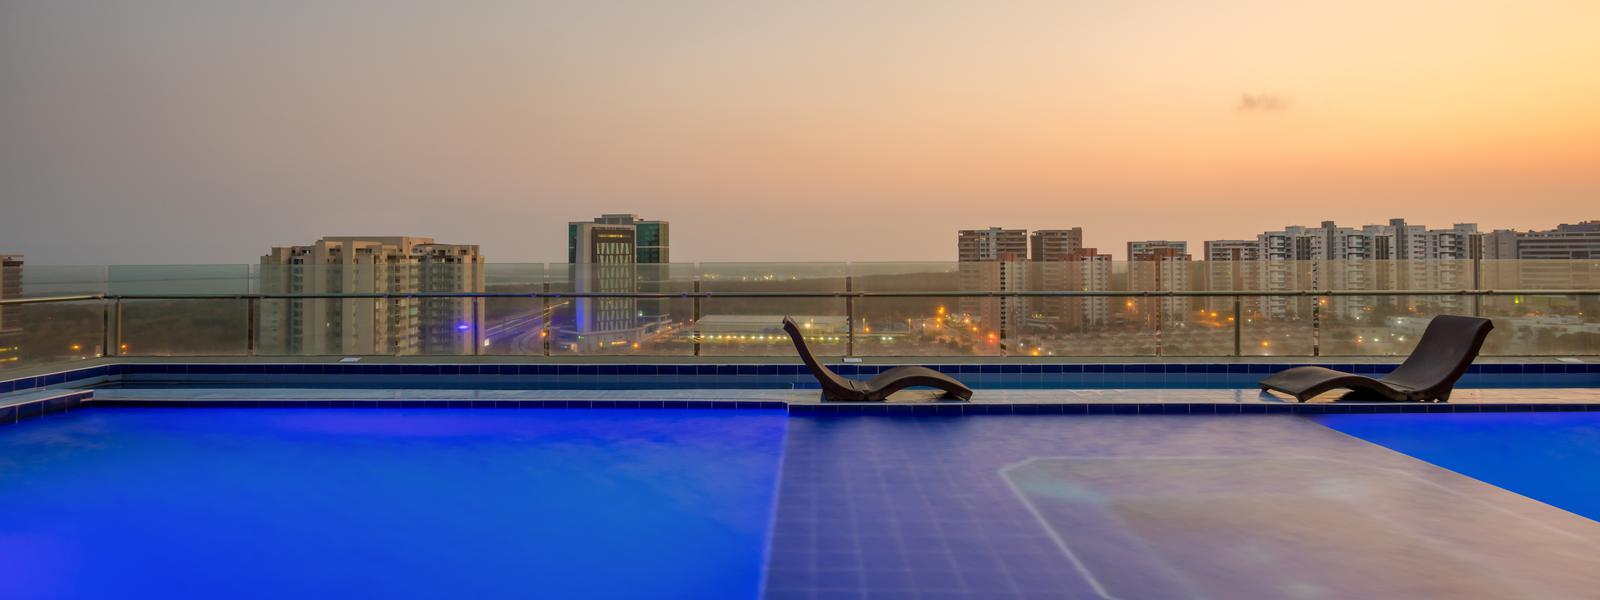 The best sunsets - GHL Collection Barranquilla Hotel - Barranquilla